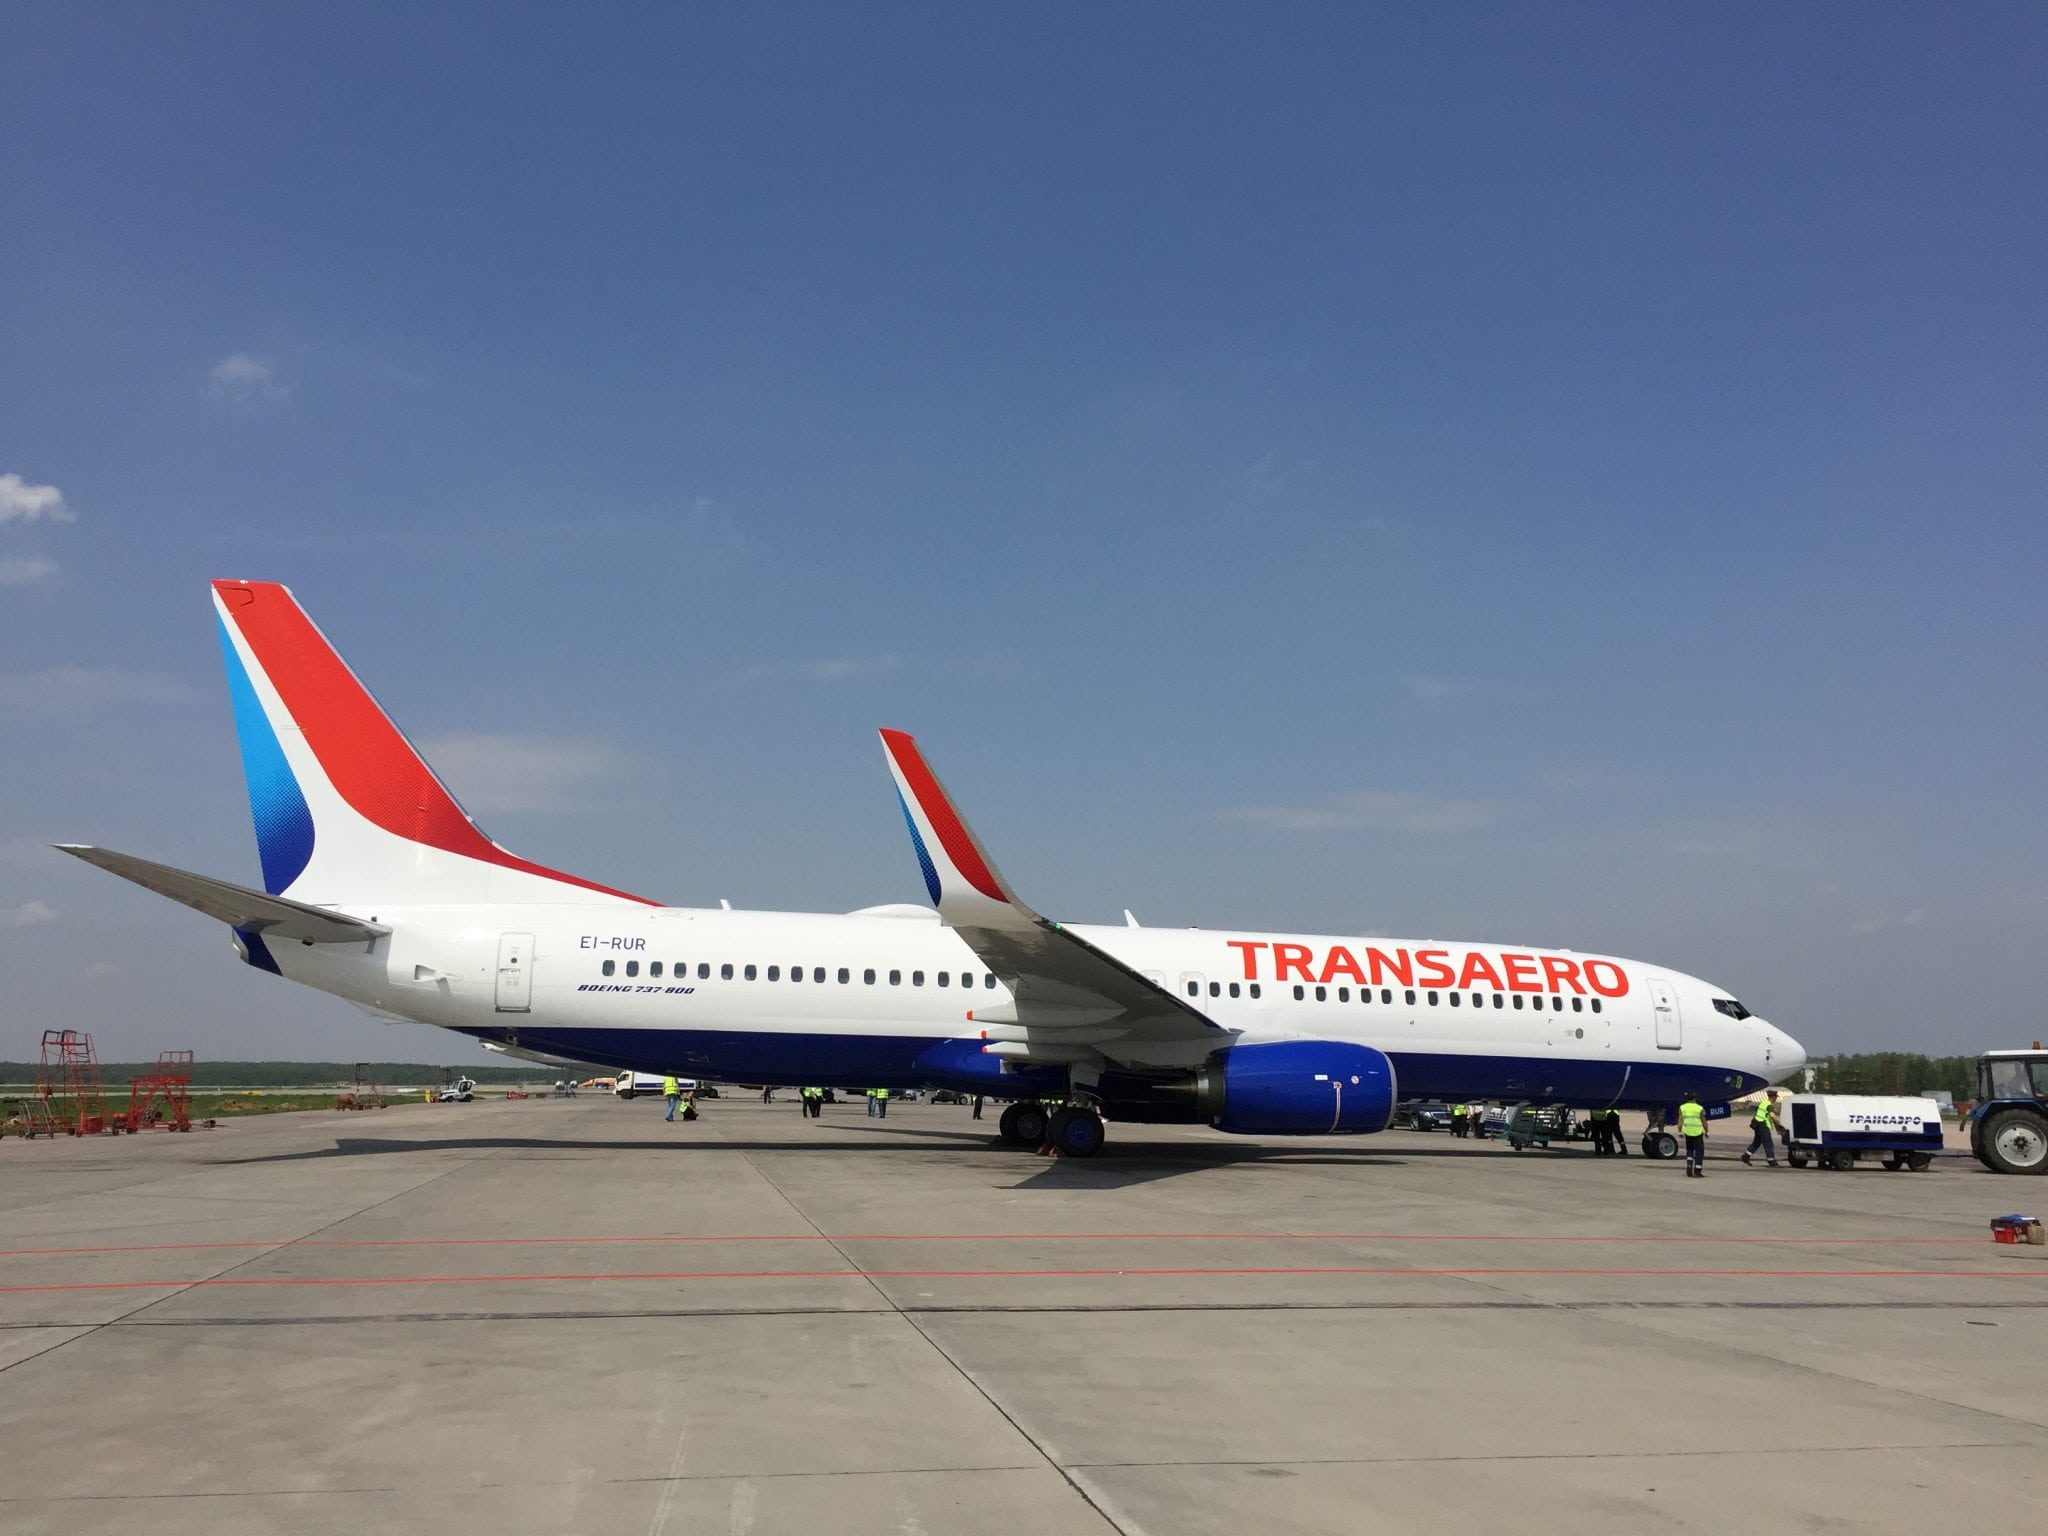 Transaero's first Next-Generation 737-800 with line fit in-flight connectivity